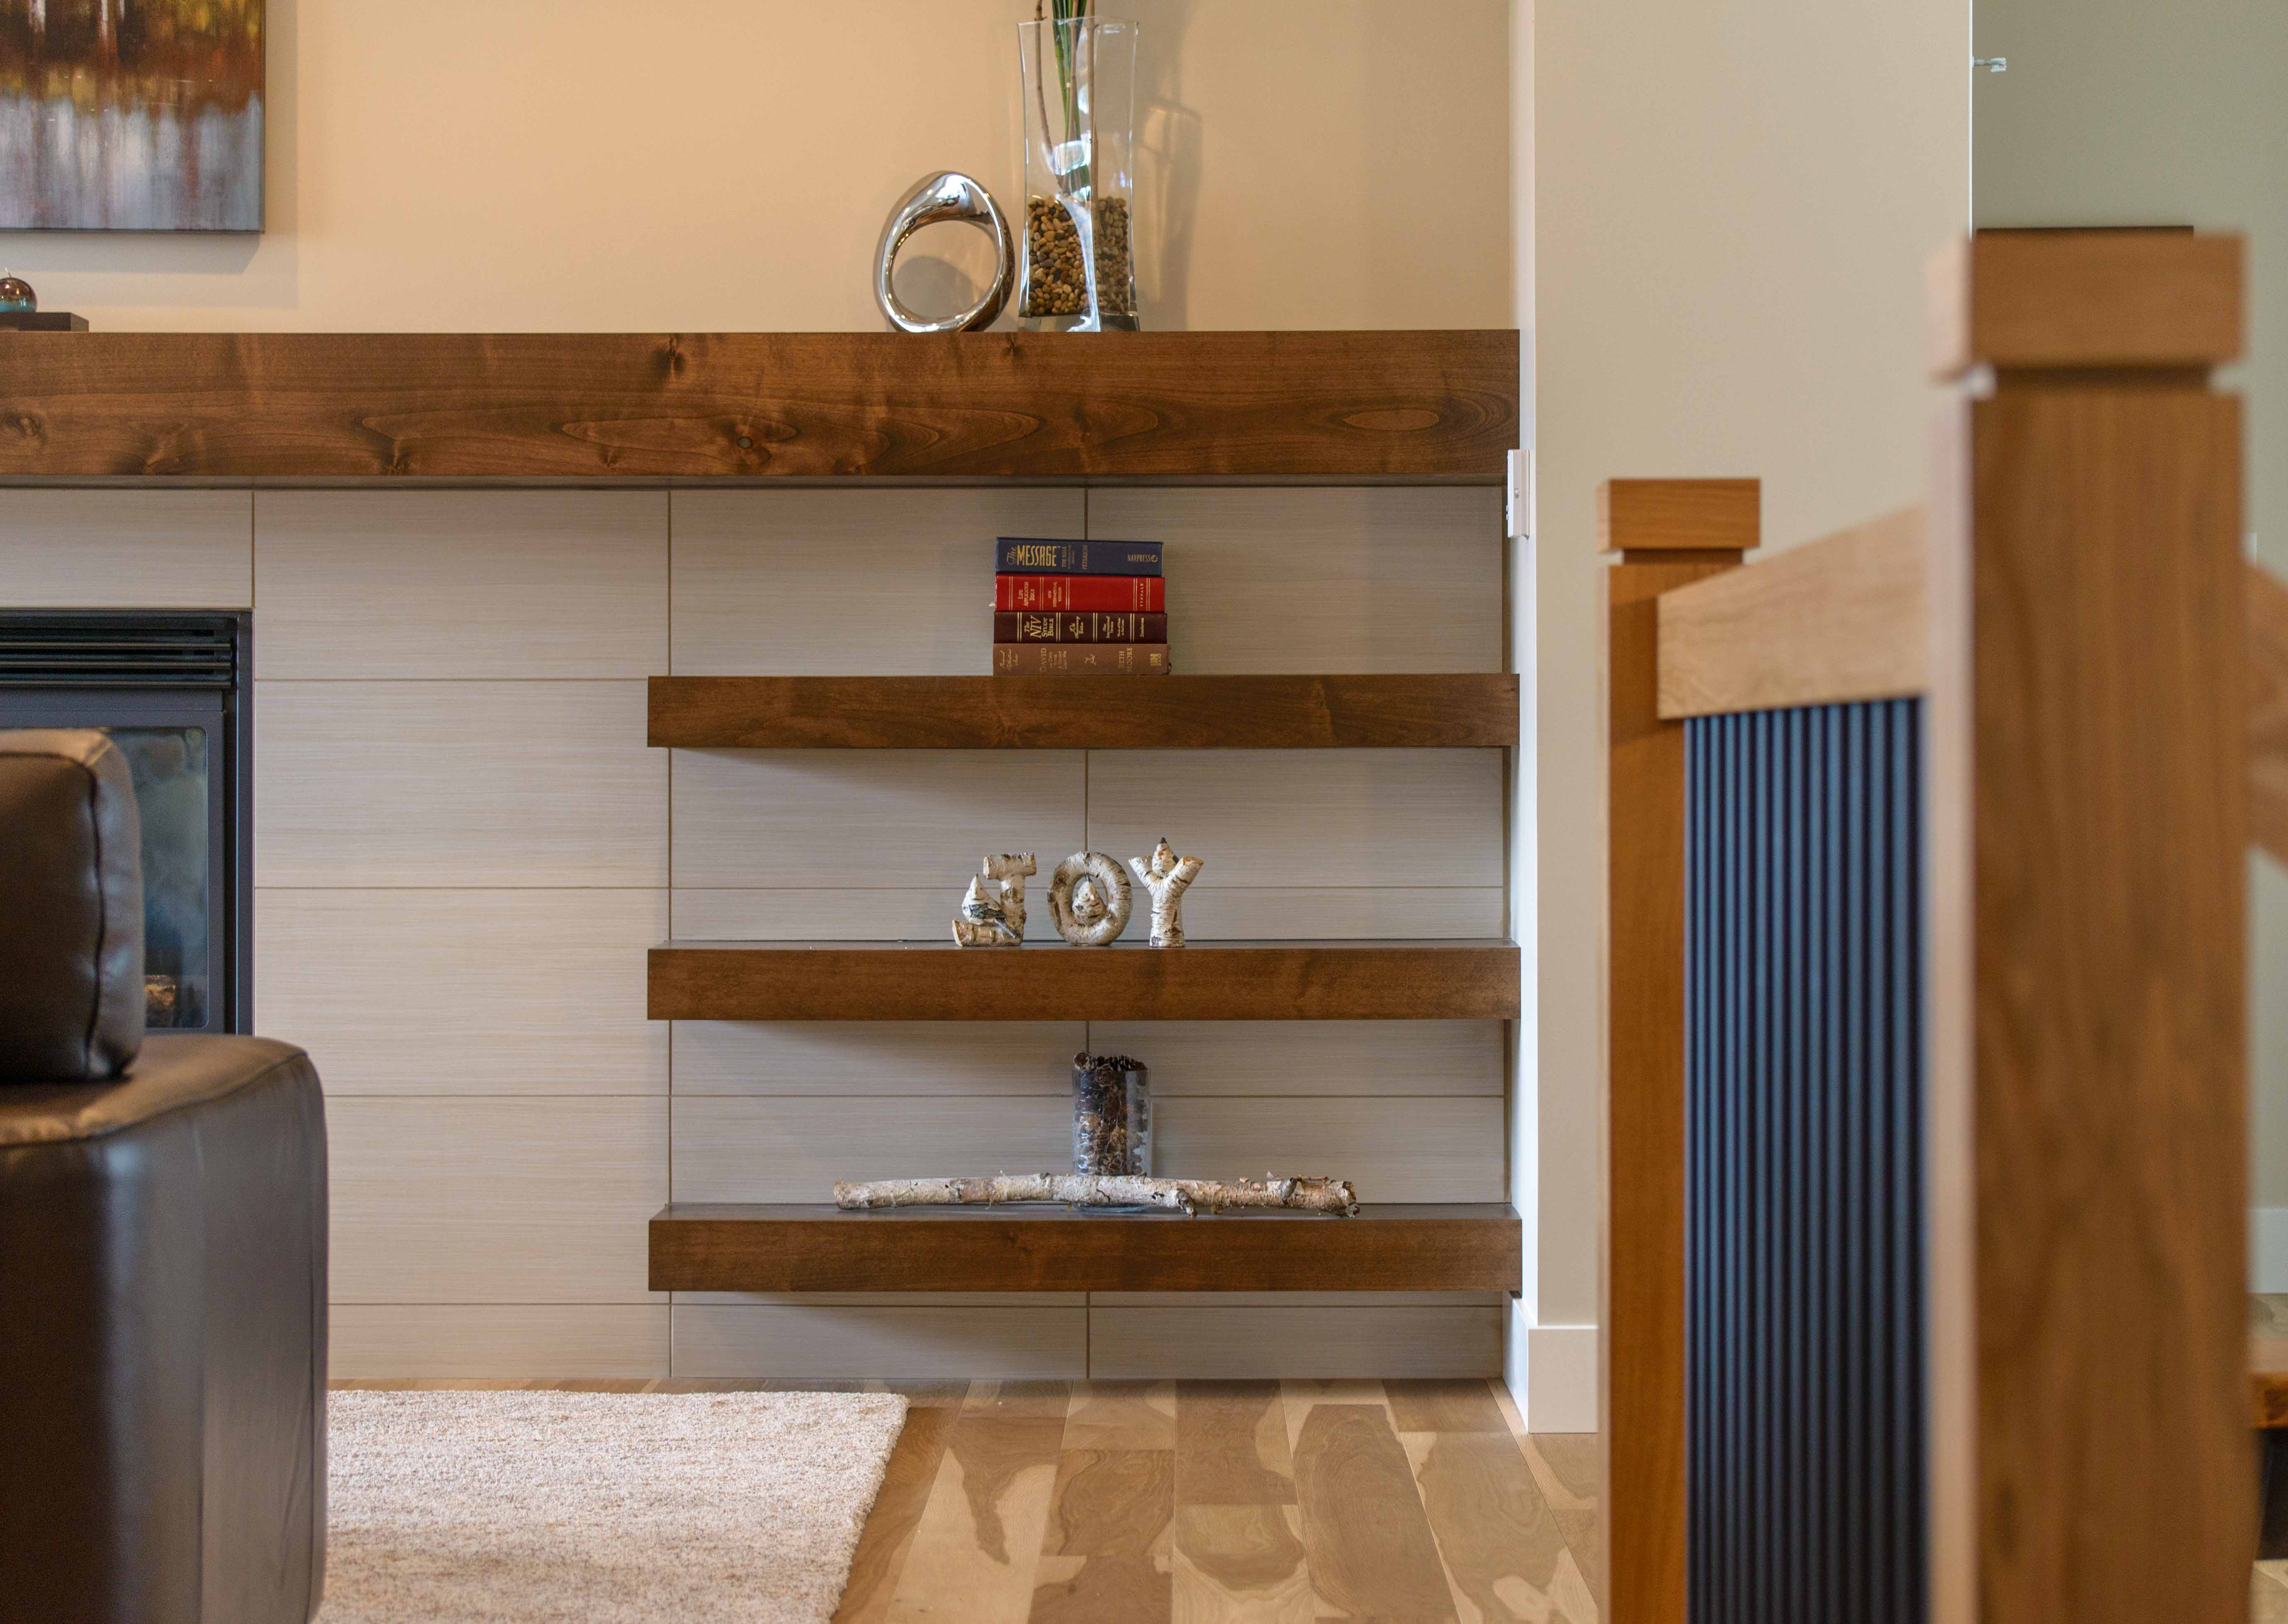 Transitional style floating shelves